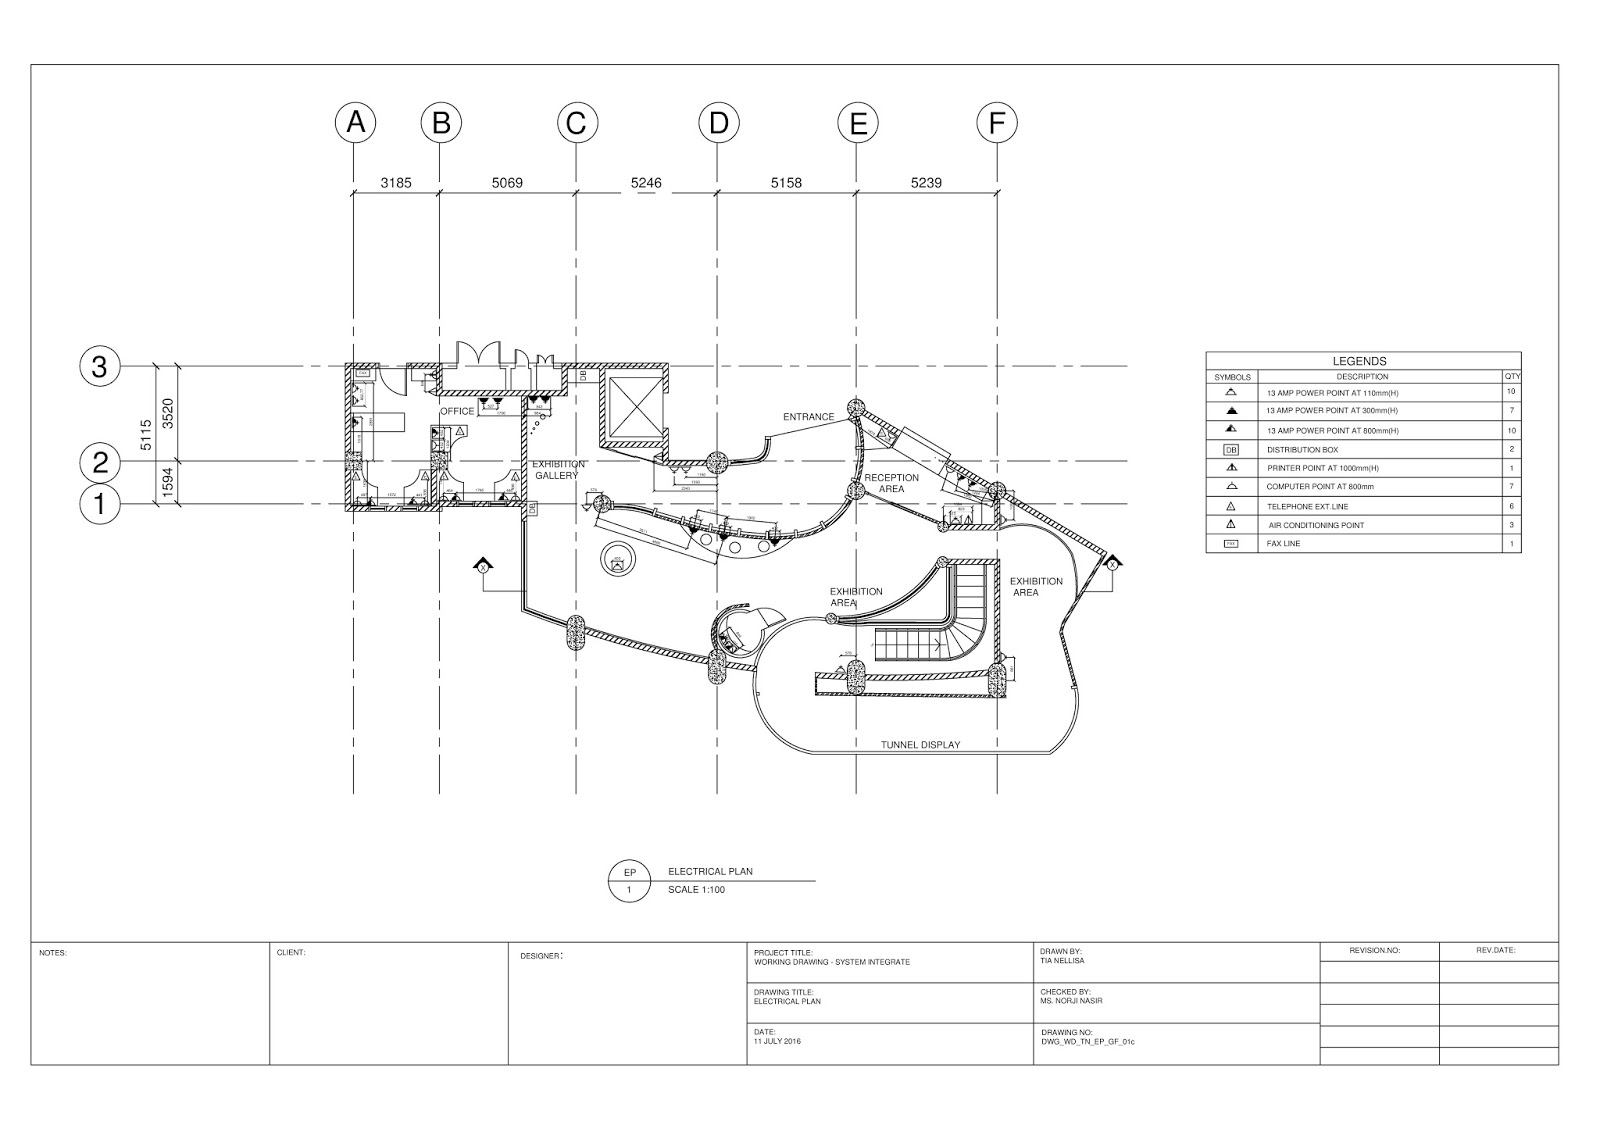 hight resolution of reflected ceiling plan electrical plan